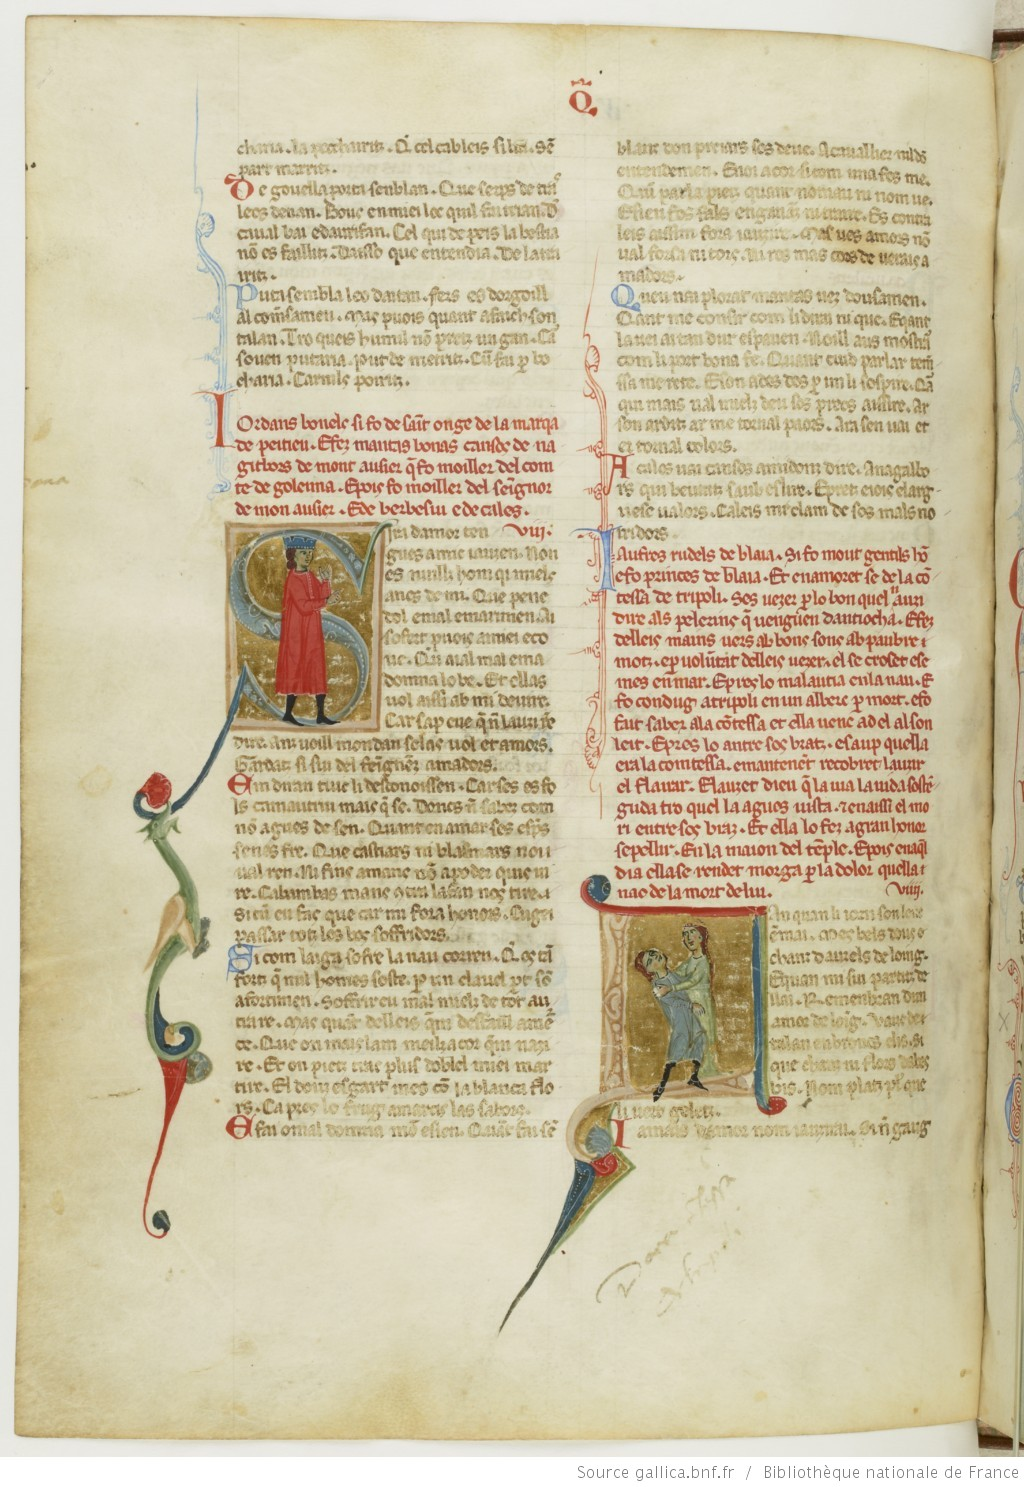 view page image(s)